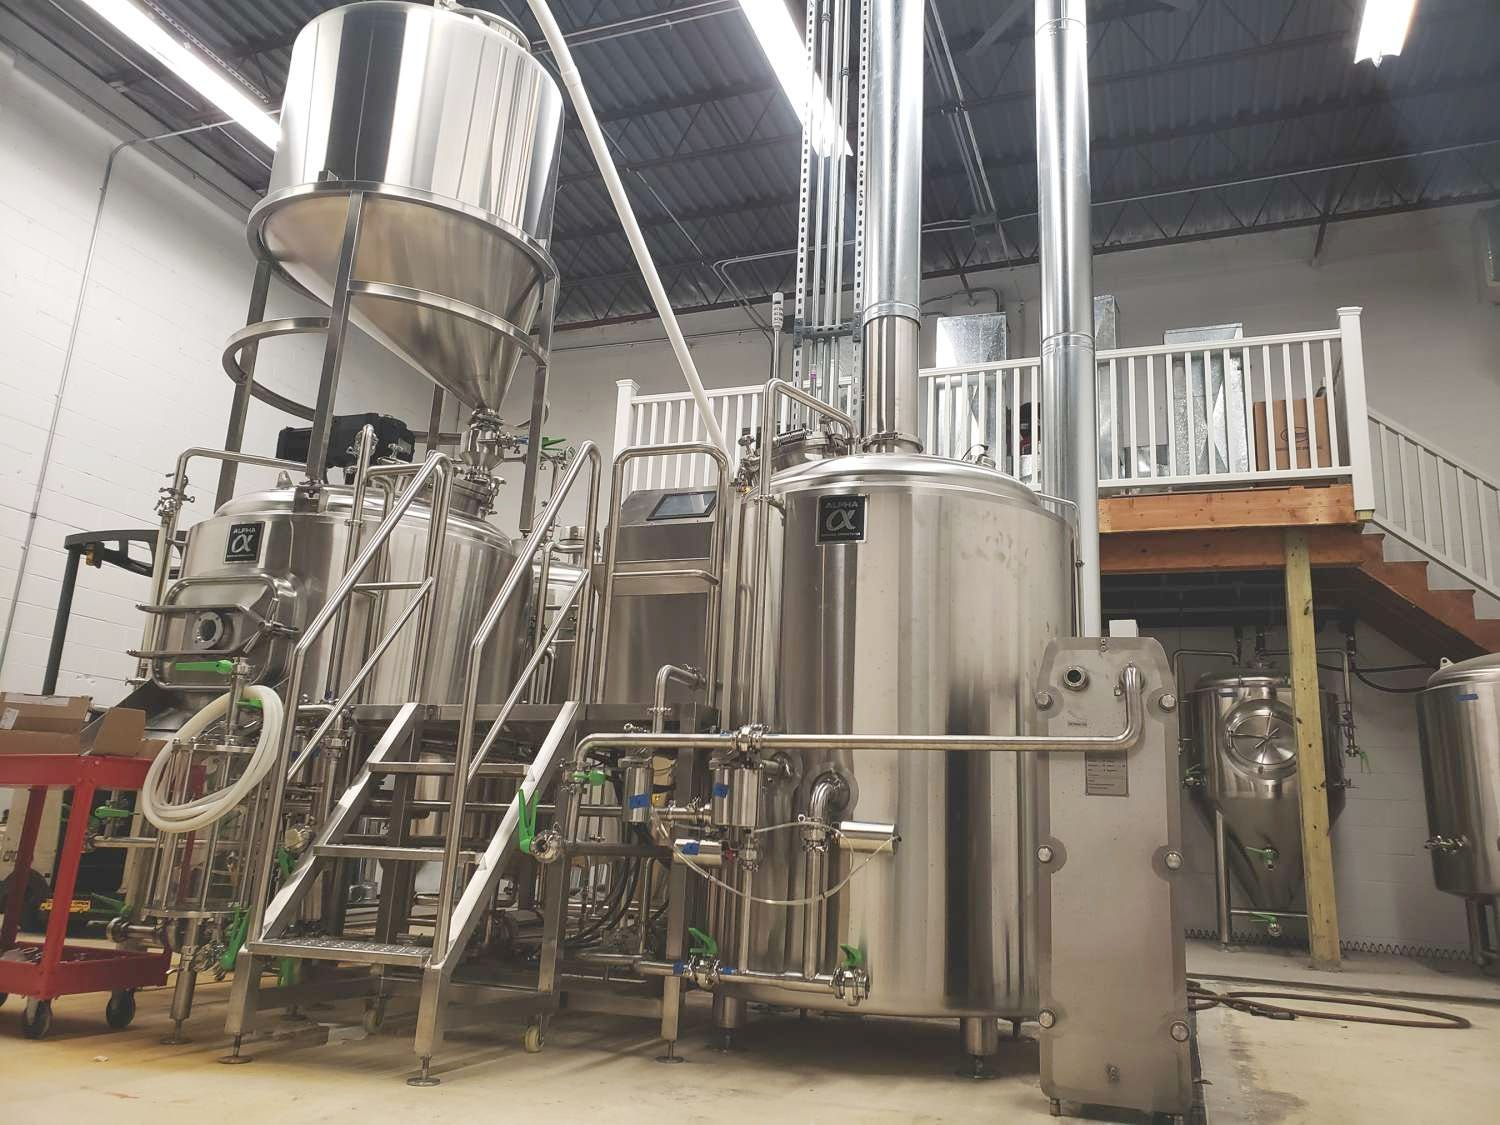 Hackensack Brewing Co. set to open soon